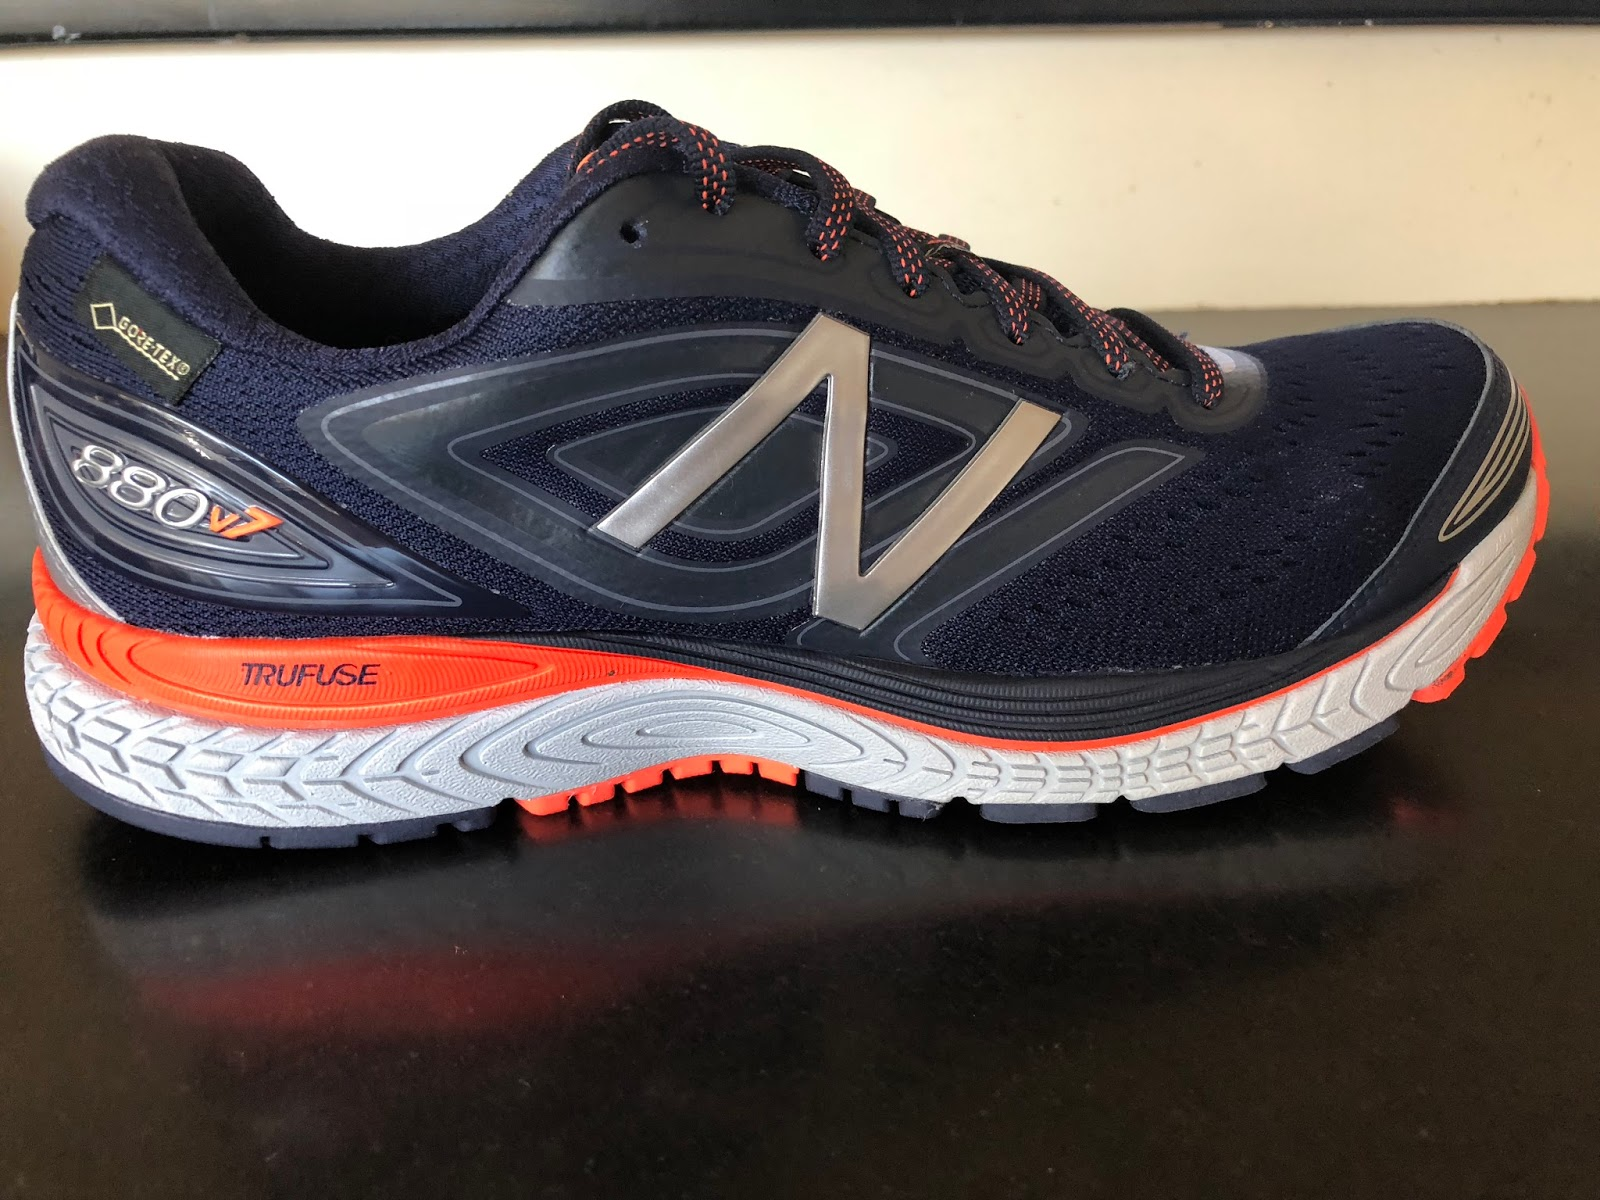 2new balance trail goretex